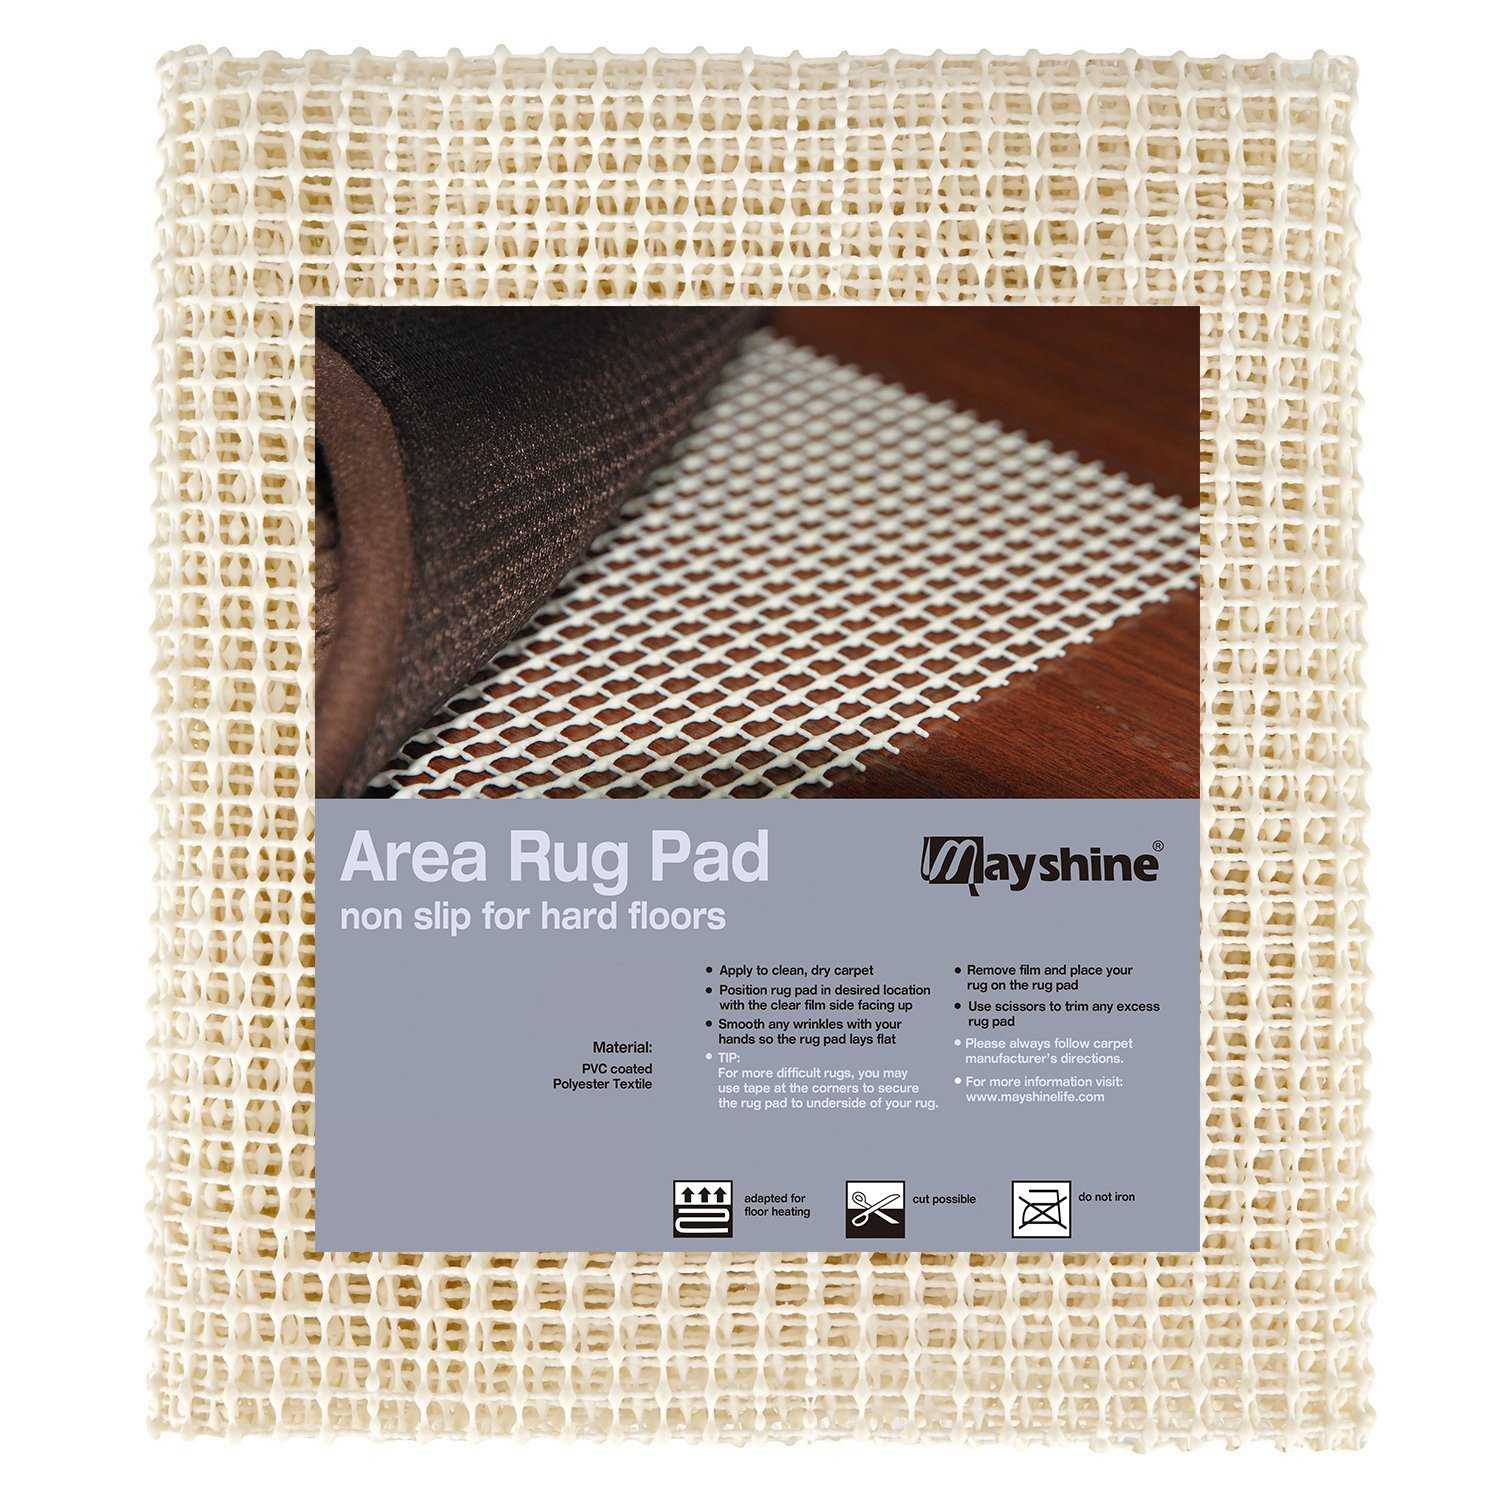 MAYSHINE Area Rug Gripper Pad (3x5 Feet), for Hard Floors, Provides Protection and Cushion for Area Rugs and Floors